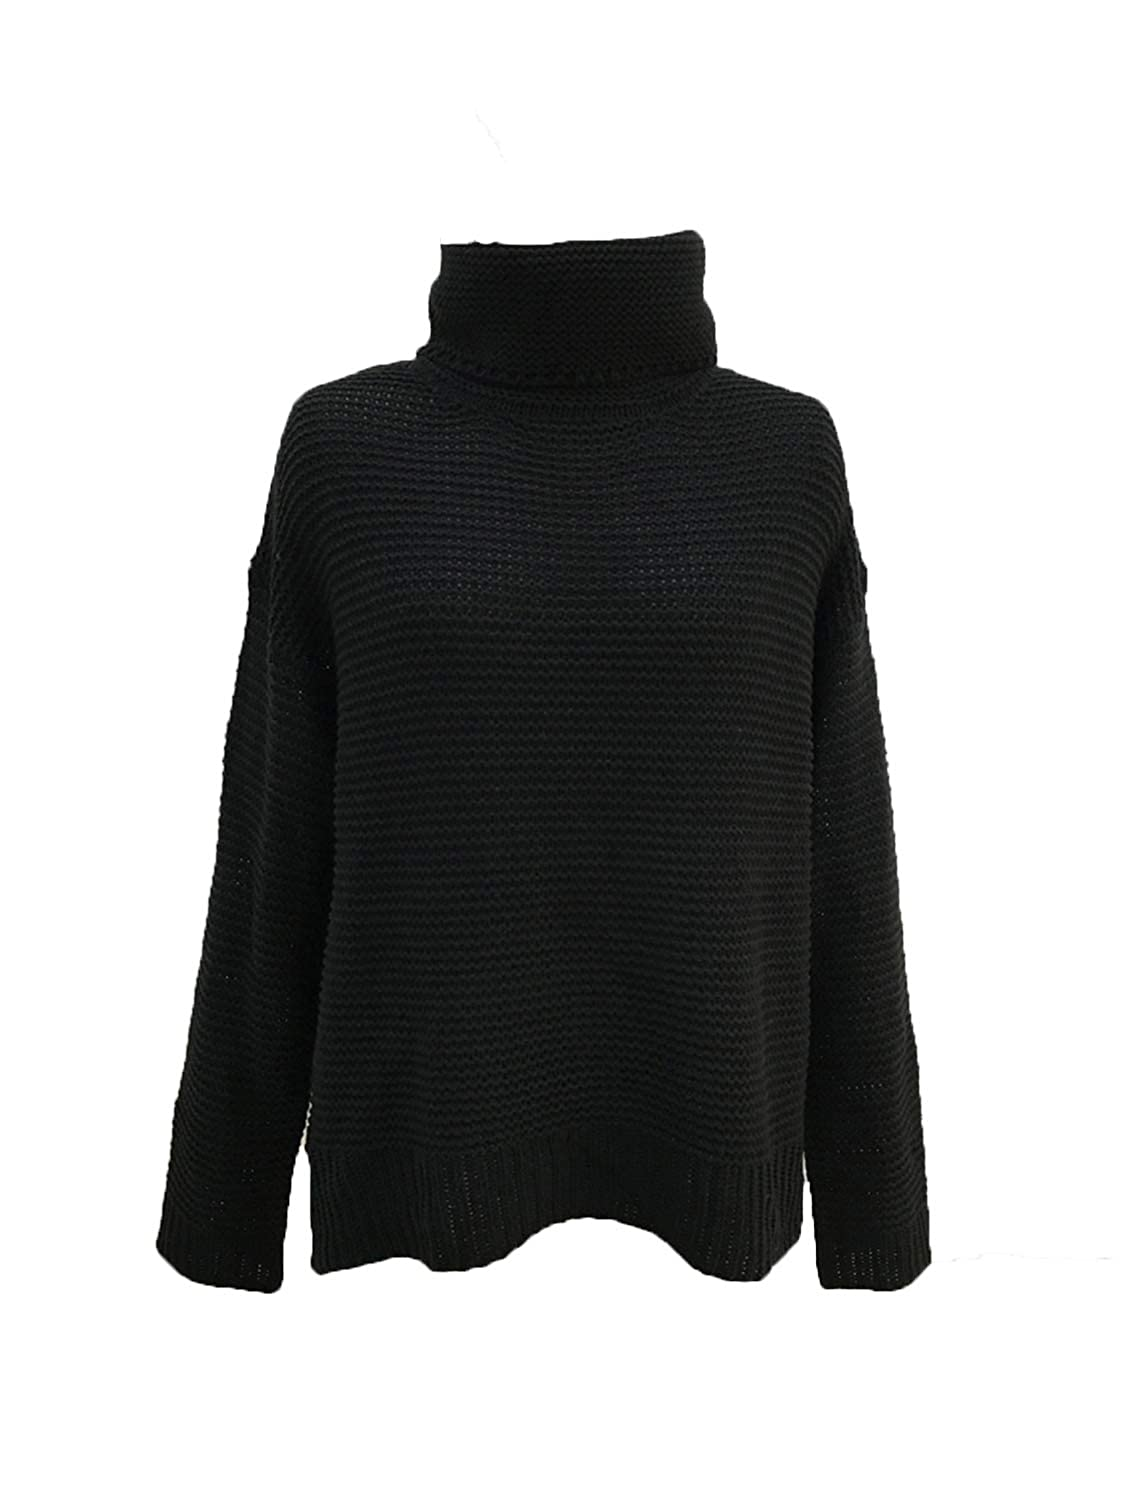 77ad881596020 Clothink Women Dark Green Plain Casual Cable Knit Oversized Pullover  Sweater at Amazon Women s Clothing store